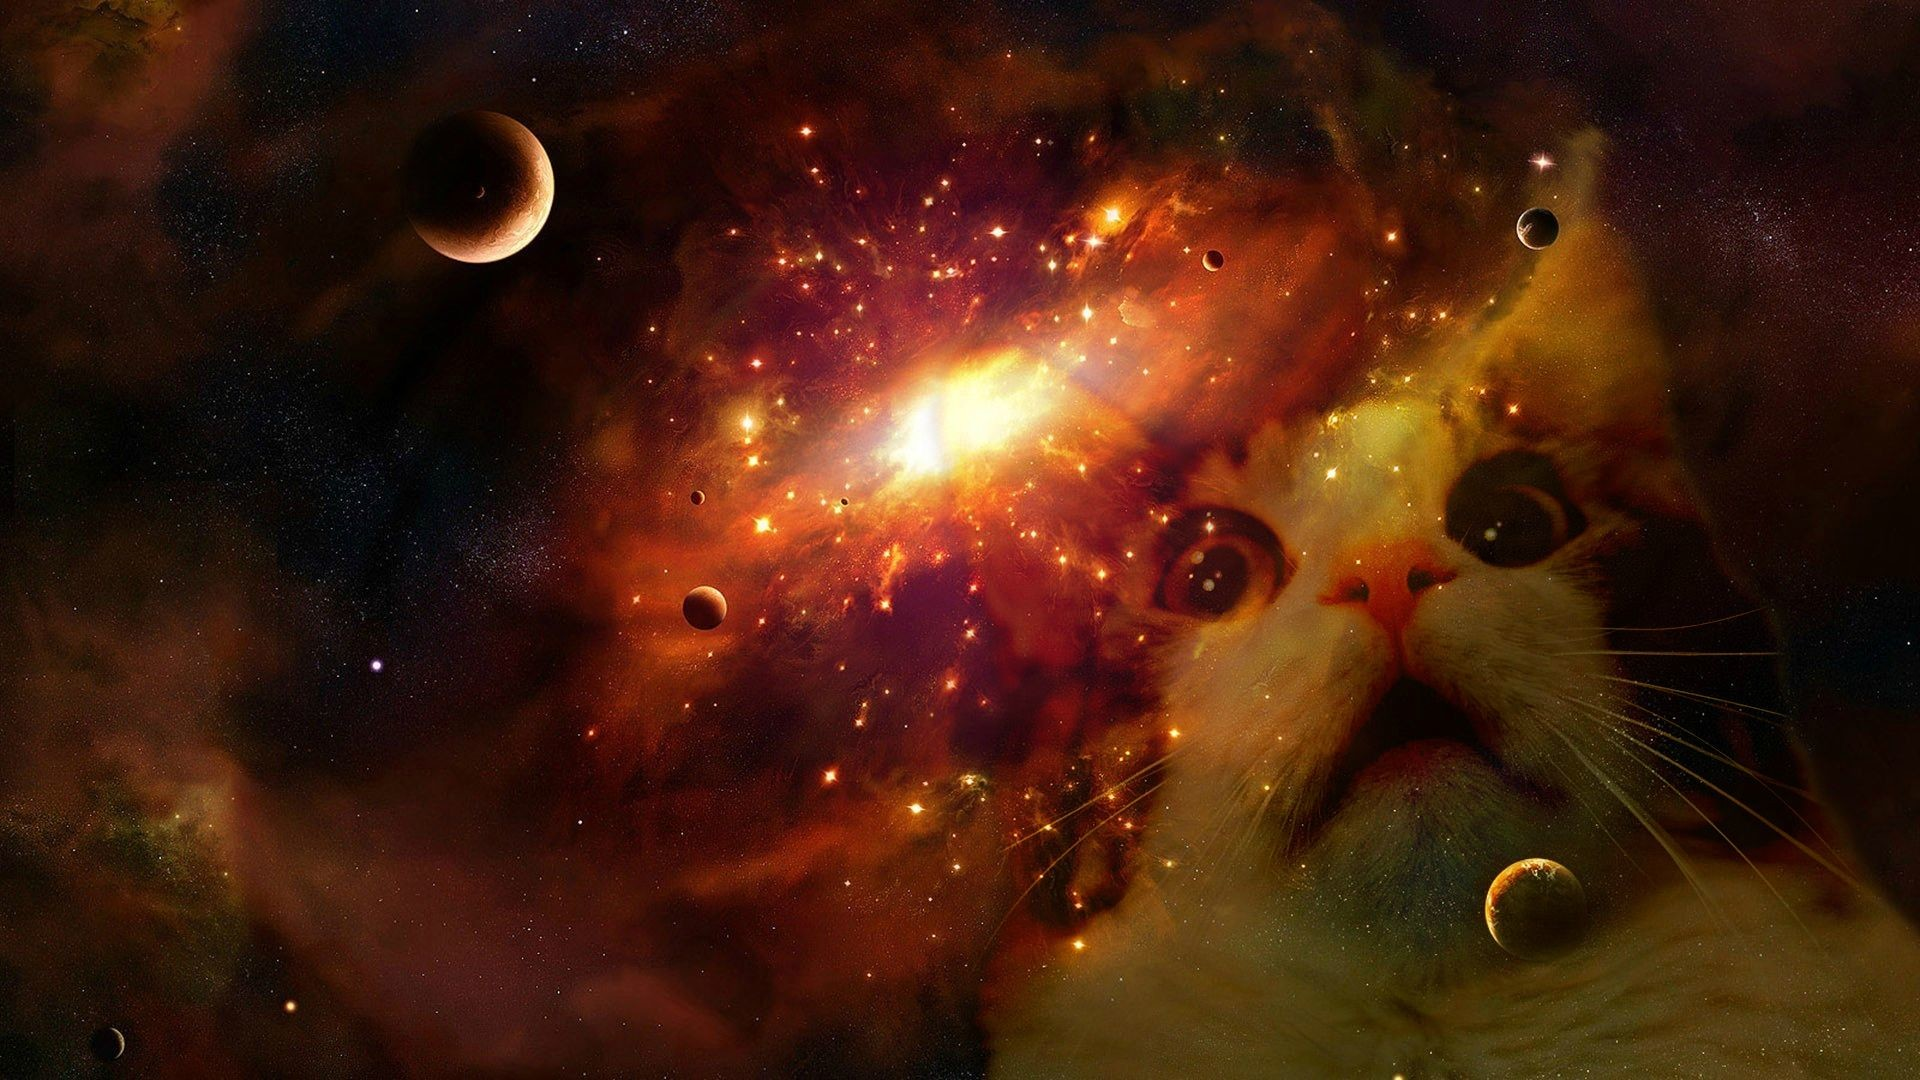 Space cat (my first attempt at Photoshop) …